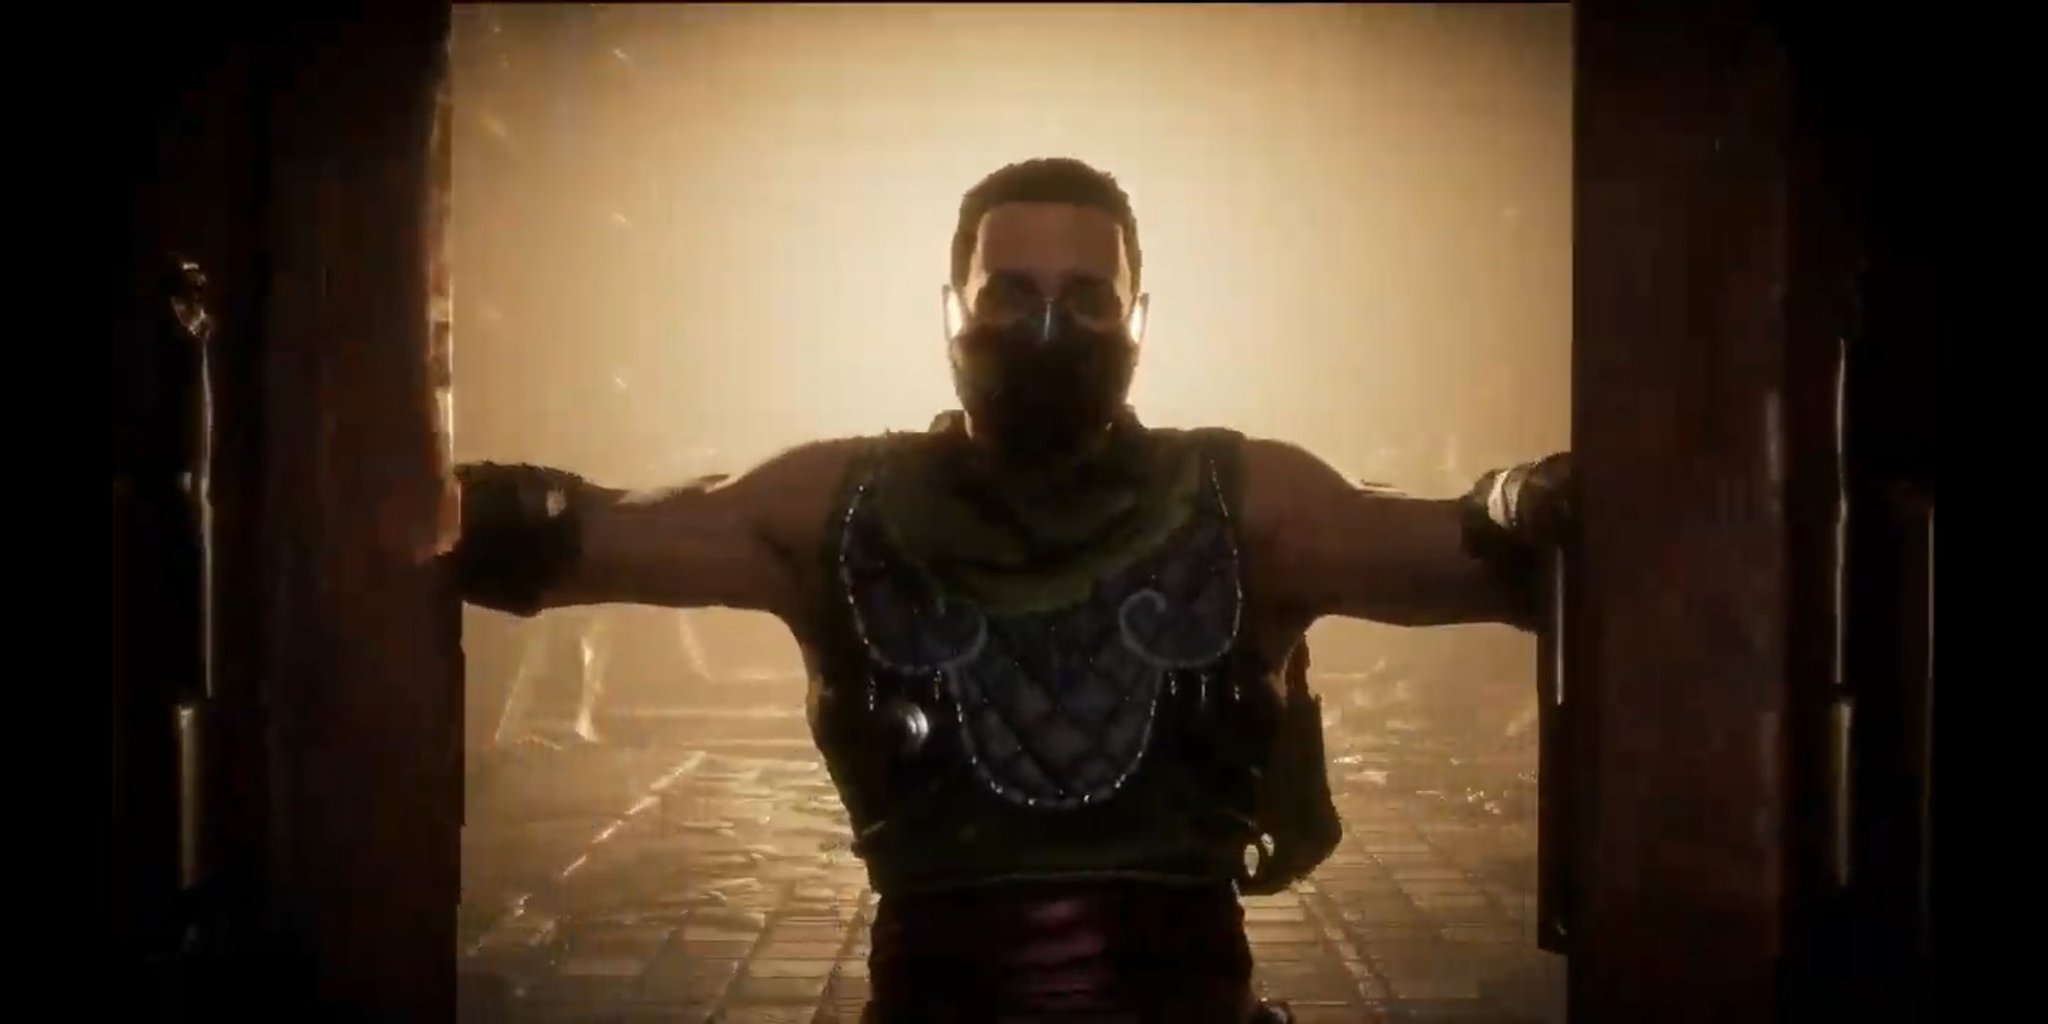 Is the new Krypt character a young Erron Black? : MortalKombat